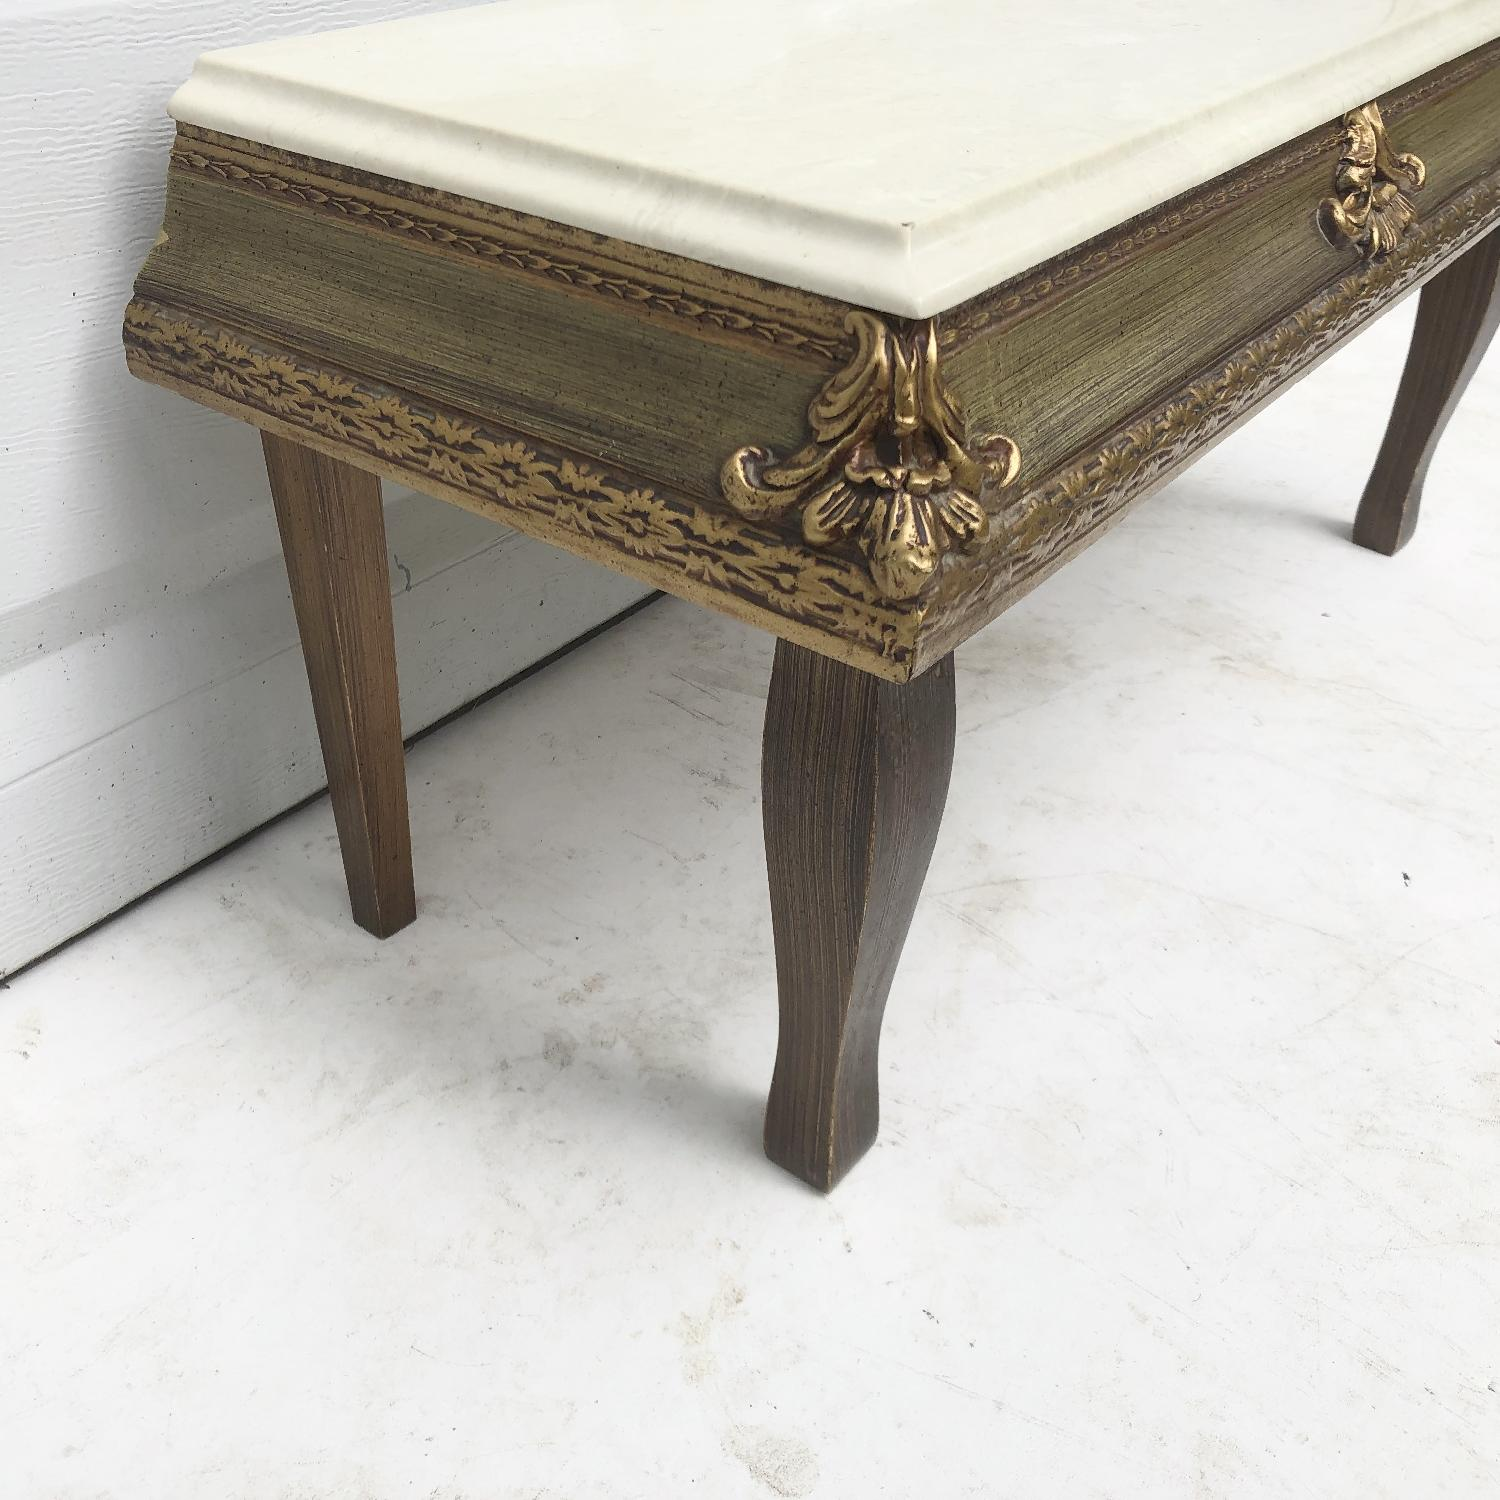 Vintage French Country Marble Top Table - image-5